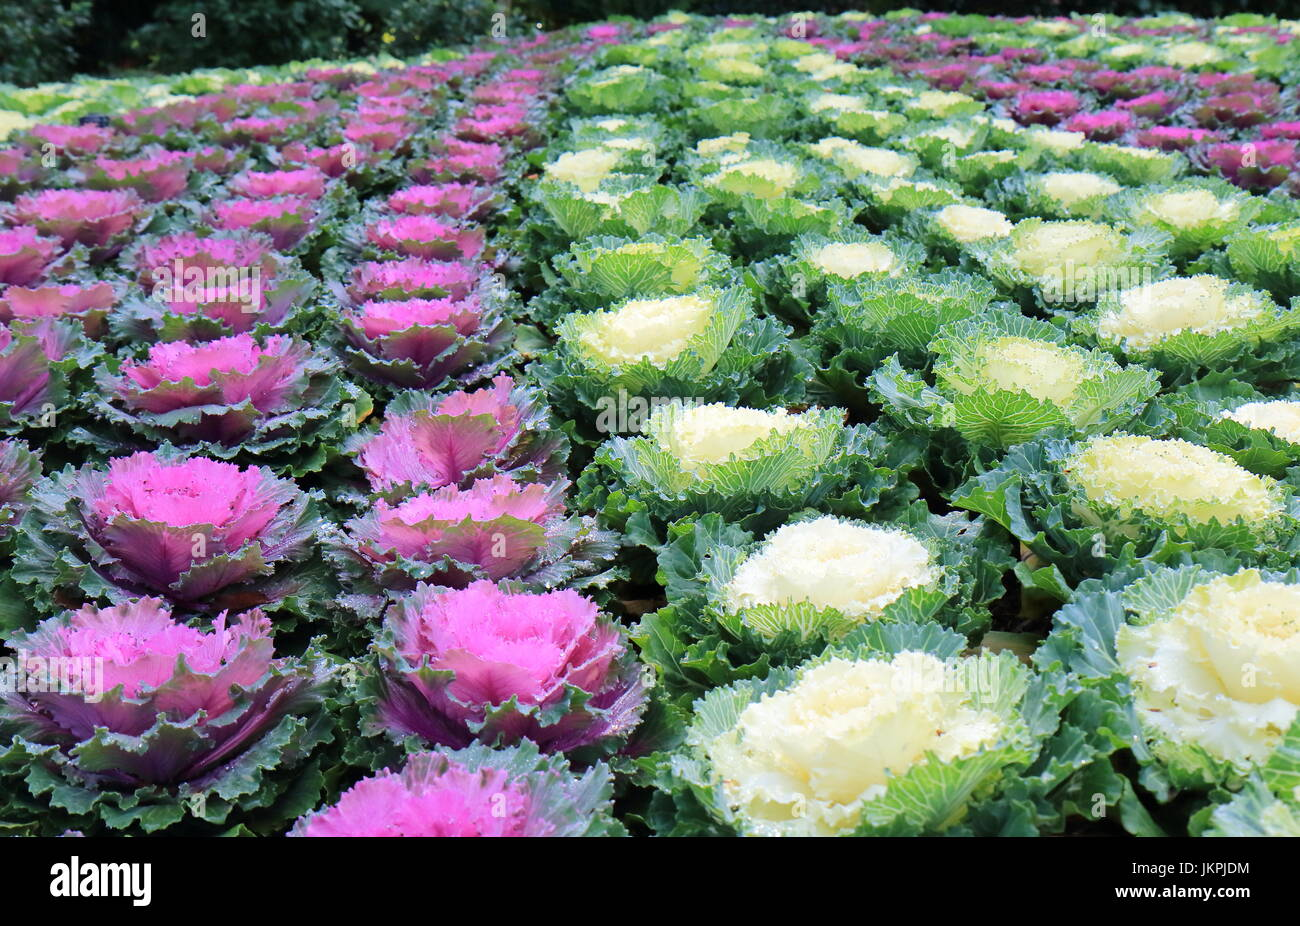 Purple And White Flower Bed Background Stock Photo 149858848 Alamy